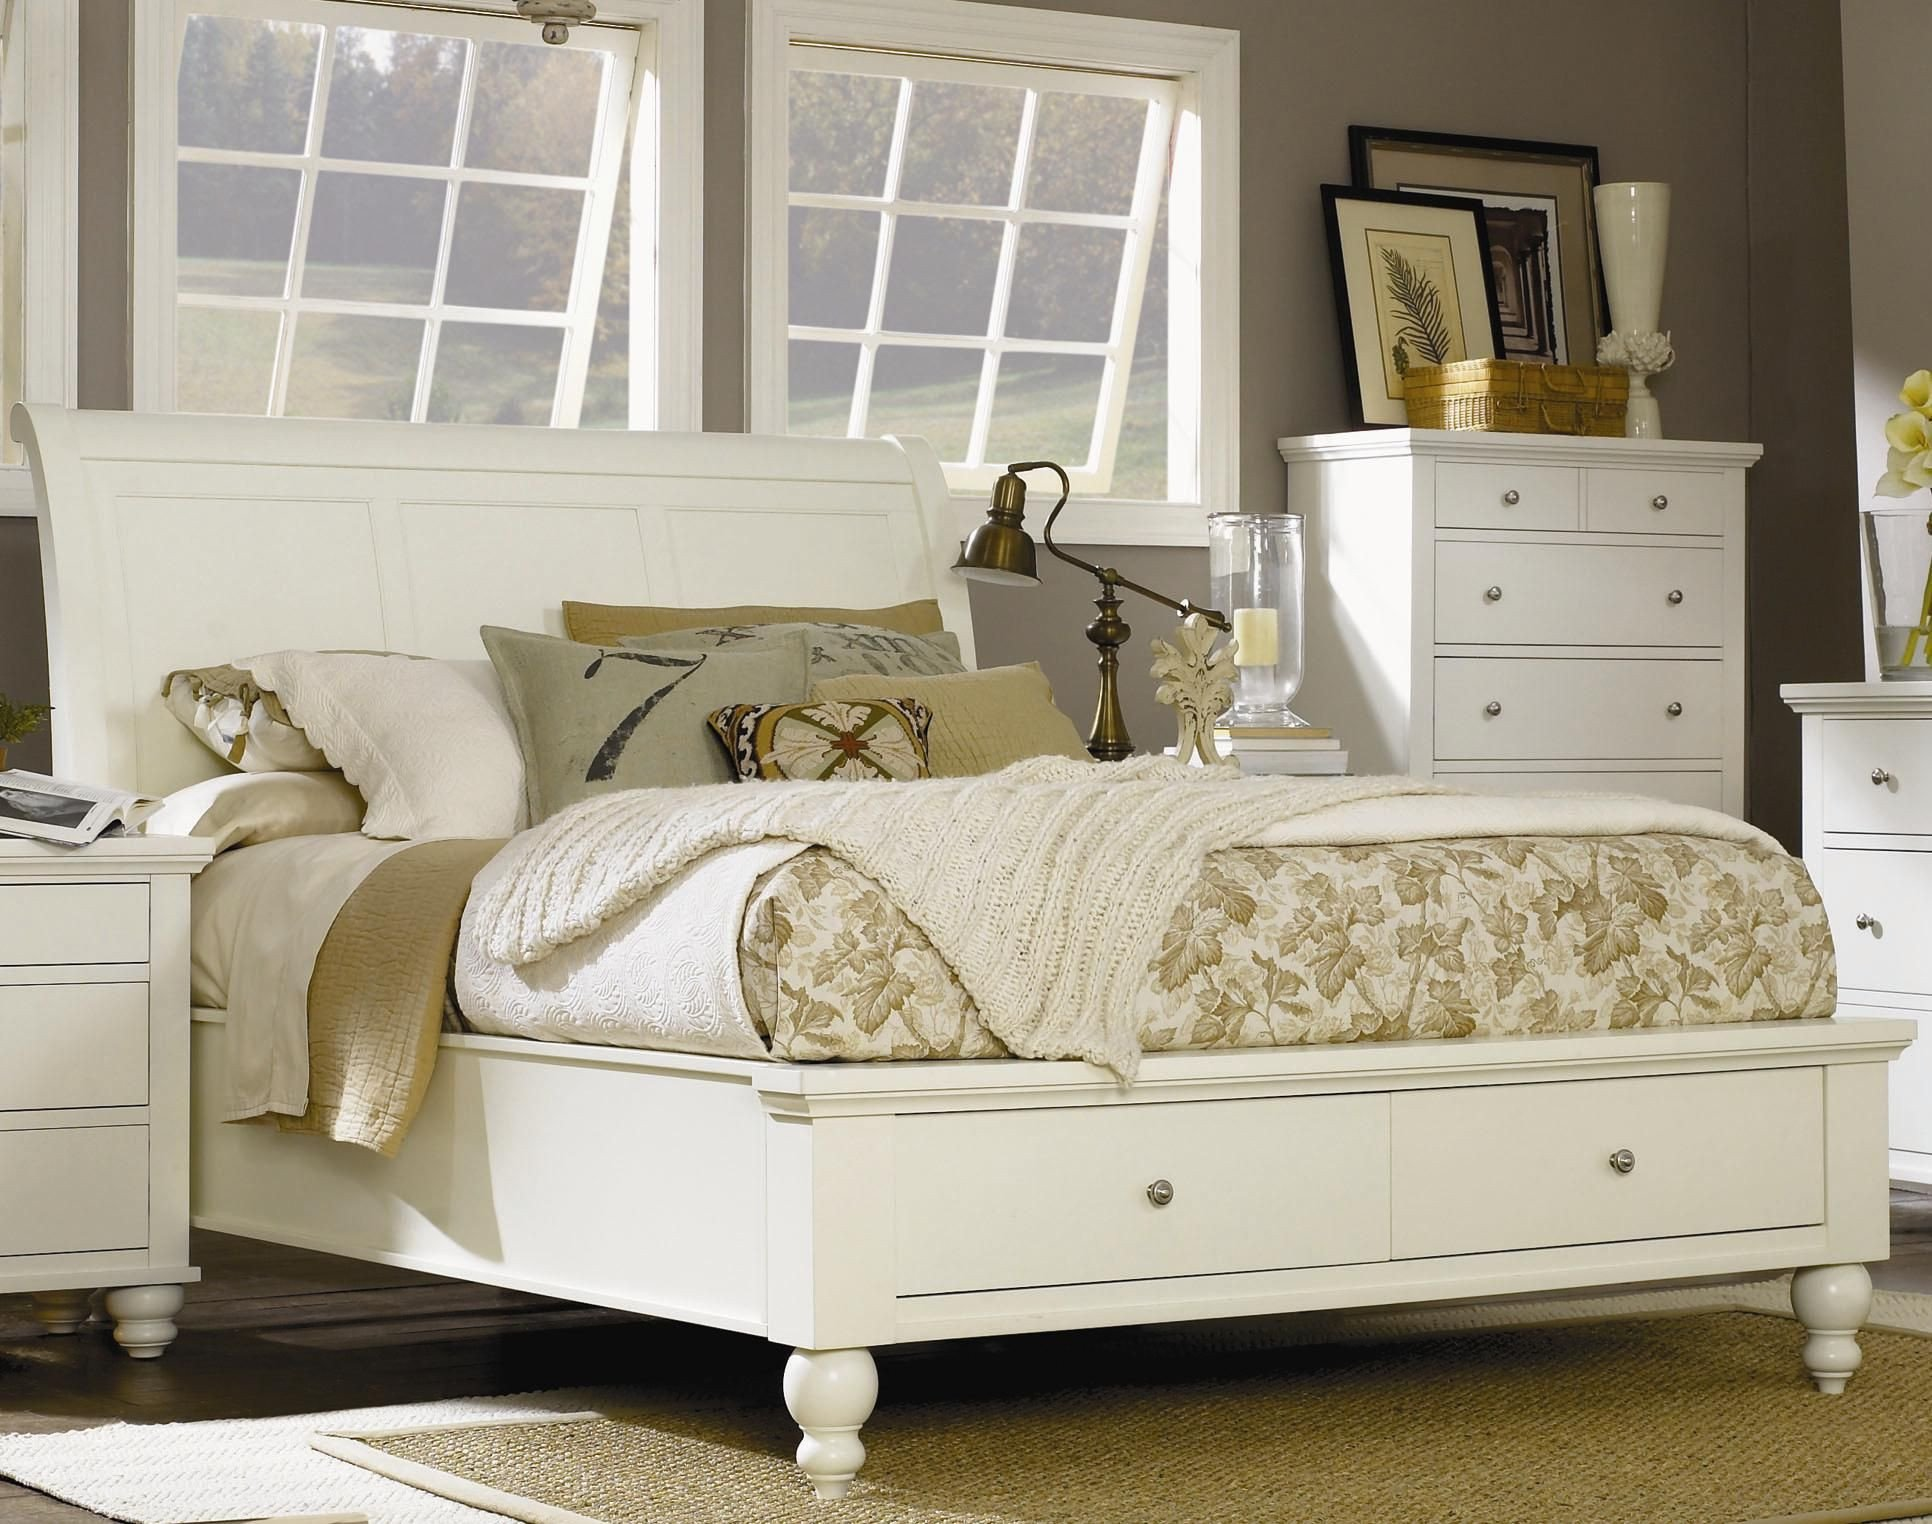 White King Size Bedroom Set Lovely Cambridge King Size Bed with Sleigh Headboard & Drawer